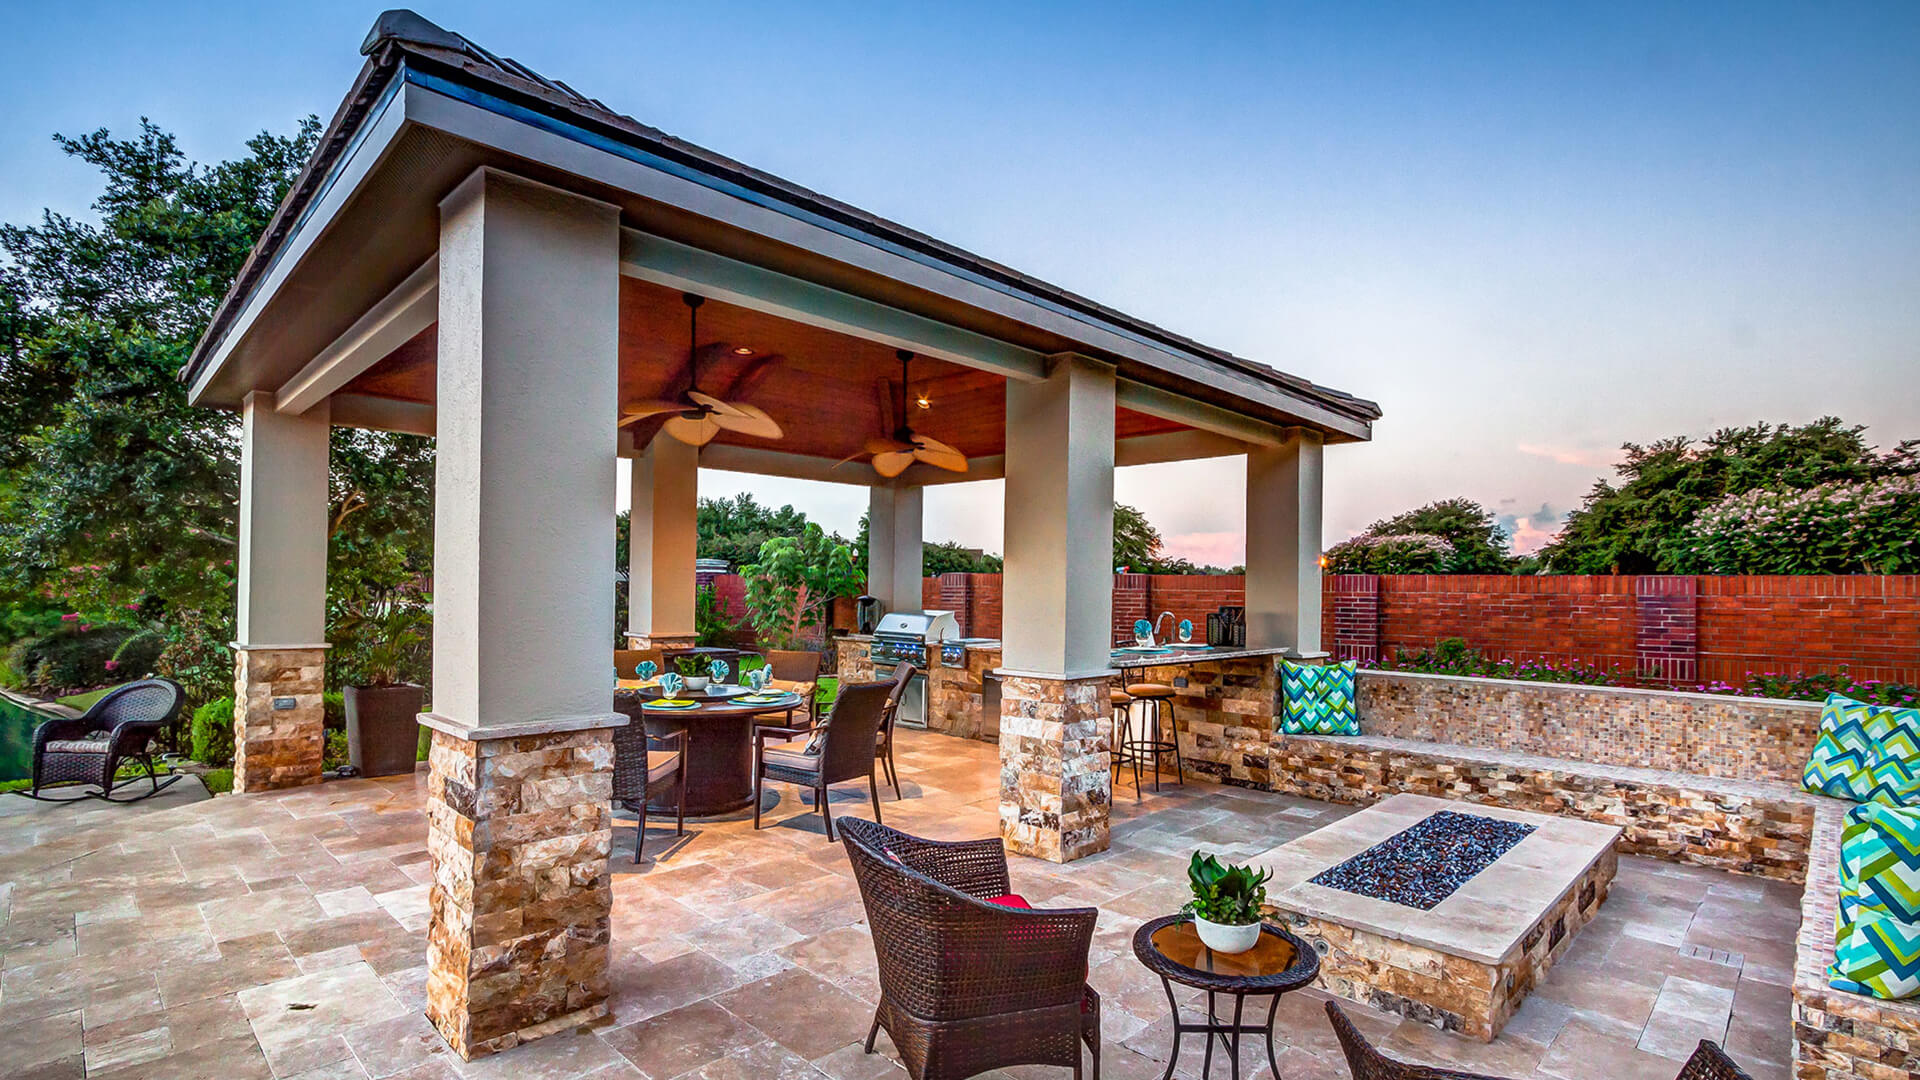 Custom Outdoor Kitchen and Cabana - Side View by Creekstone Outdoor Living in Houston TexasCustom Outdoor Kitchen and Cabana - Aerial View by Creekstone Outdoor Living in Houston Texas